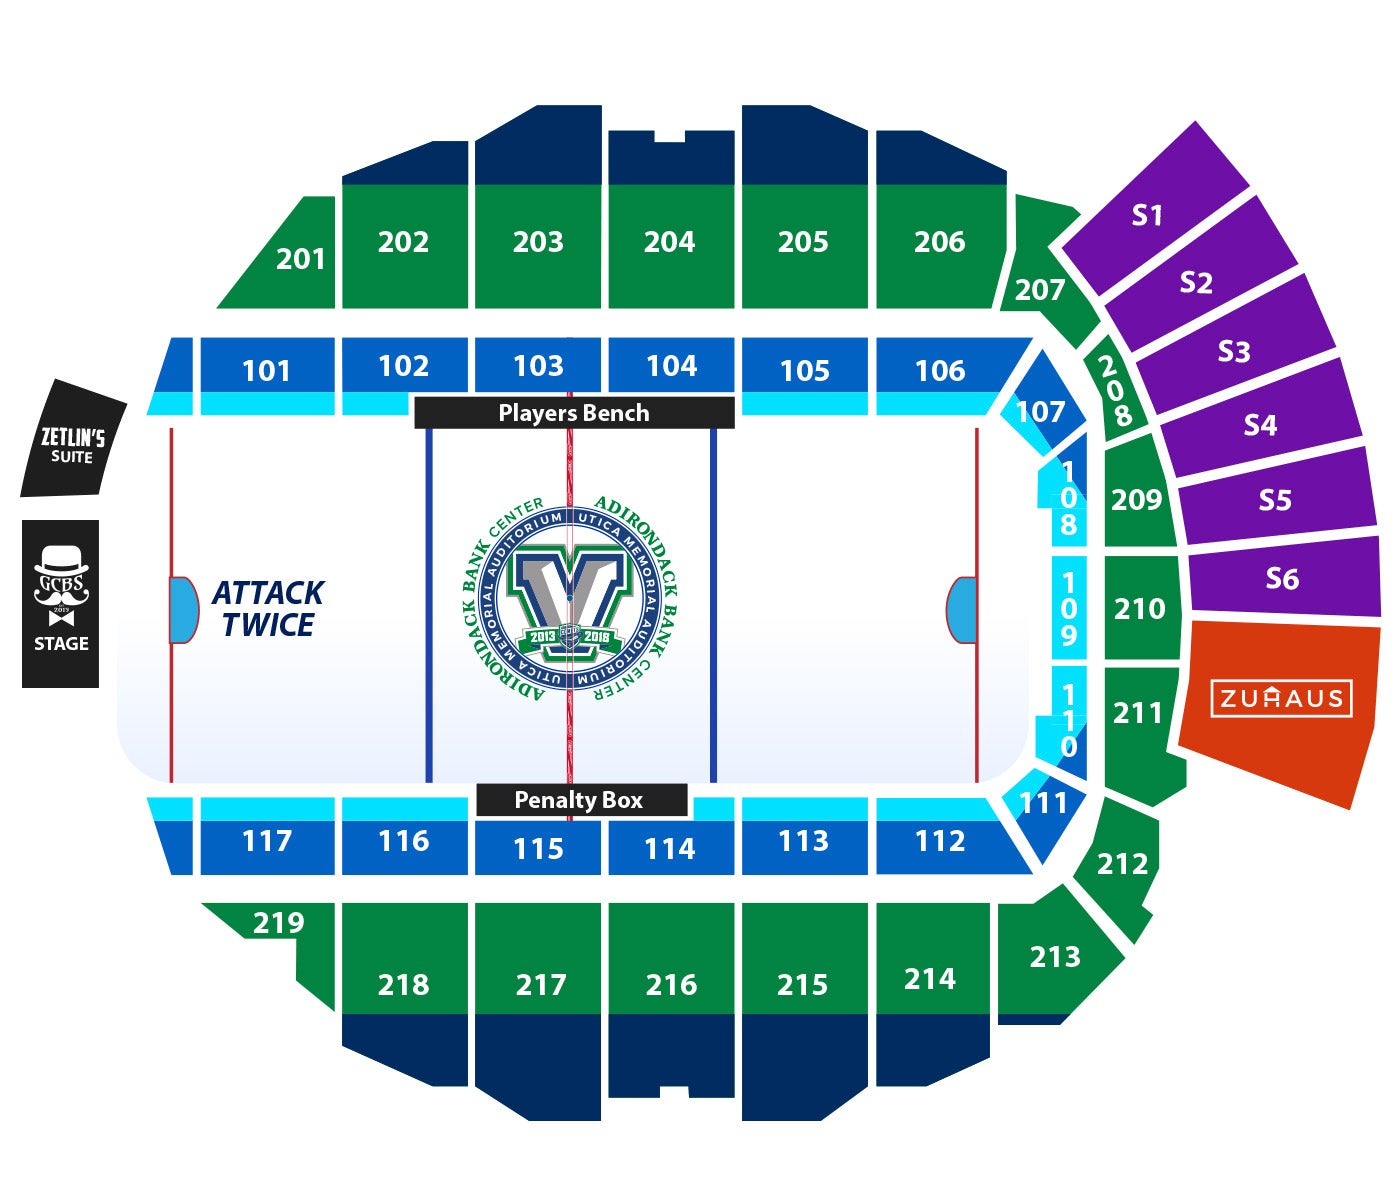 tickets_seatmap.jpg